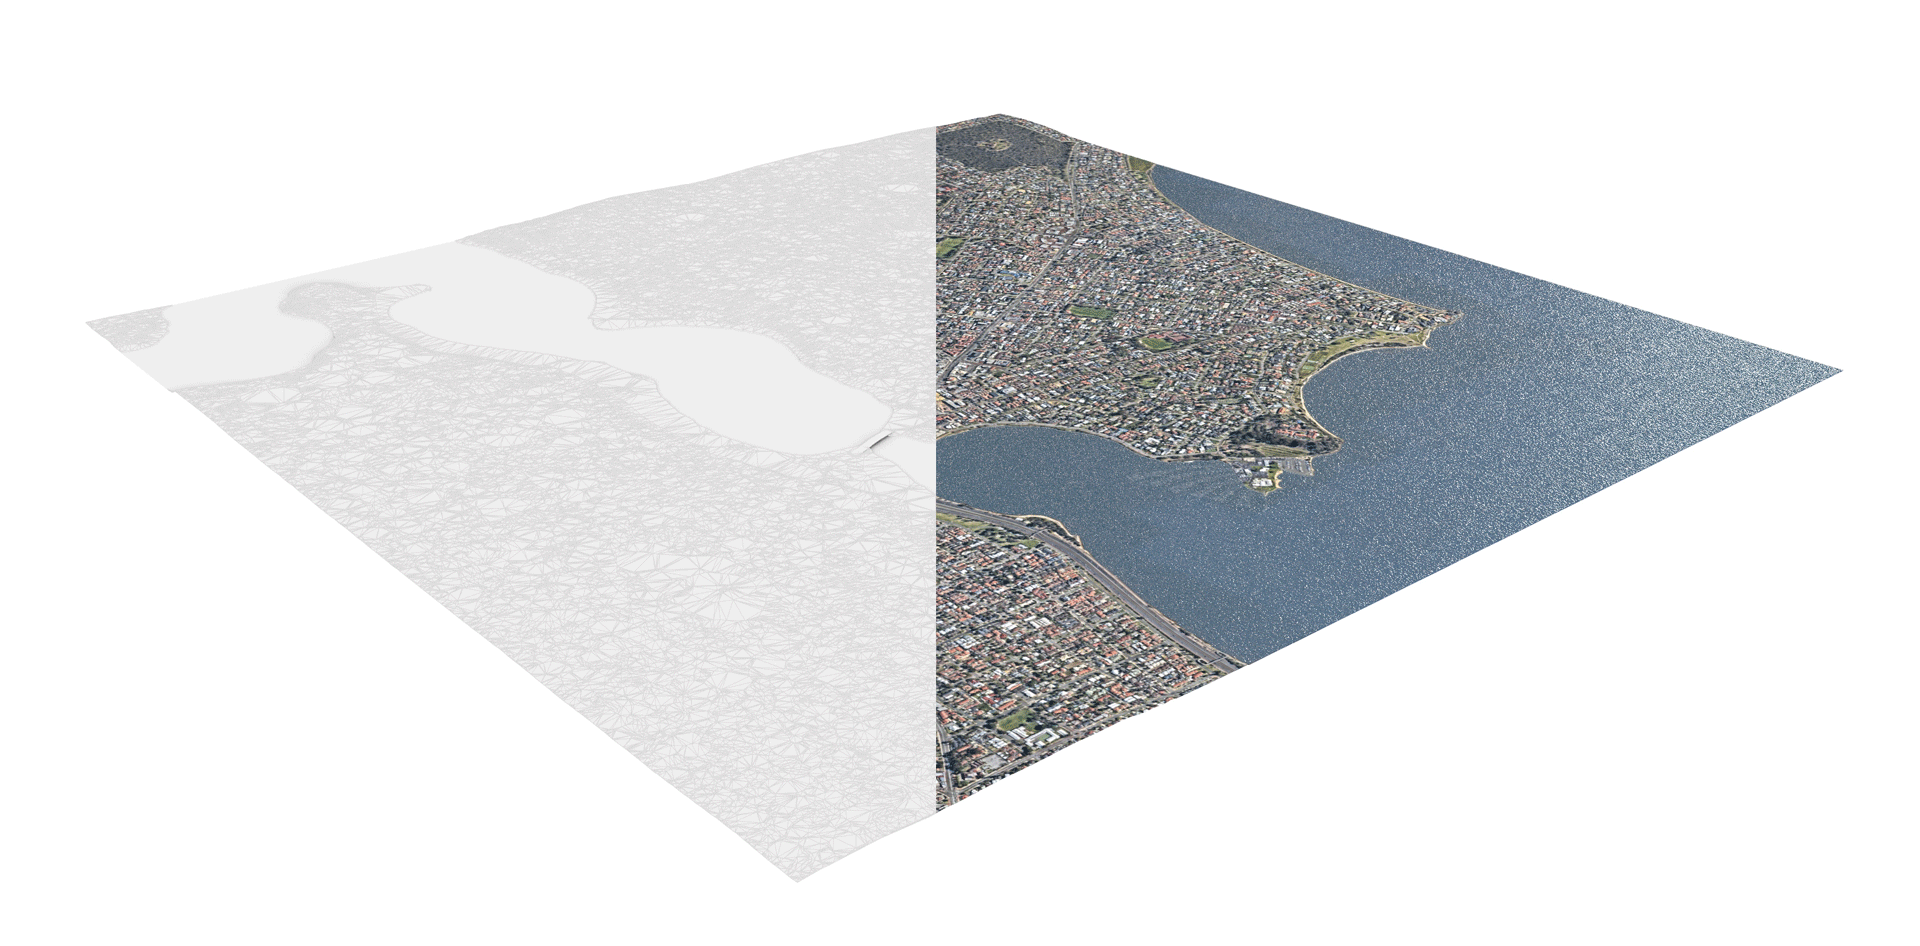 [Figure 2: Mesh and Aerial Texture overlay